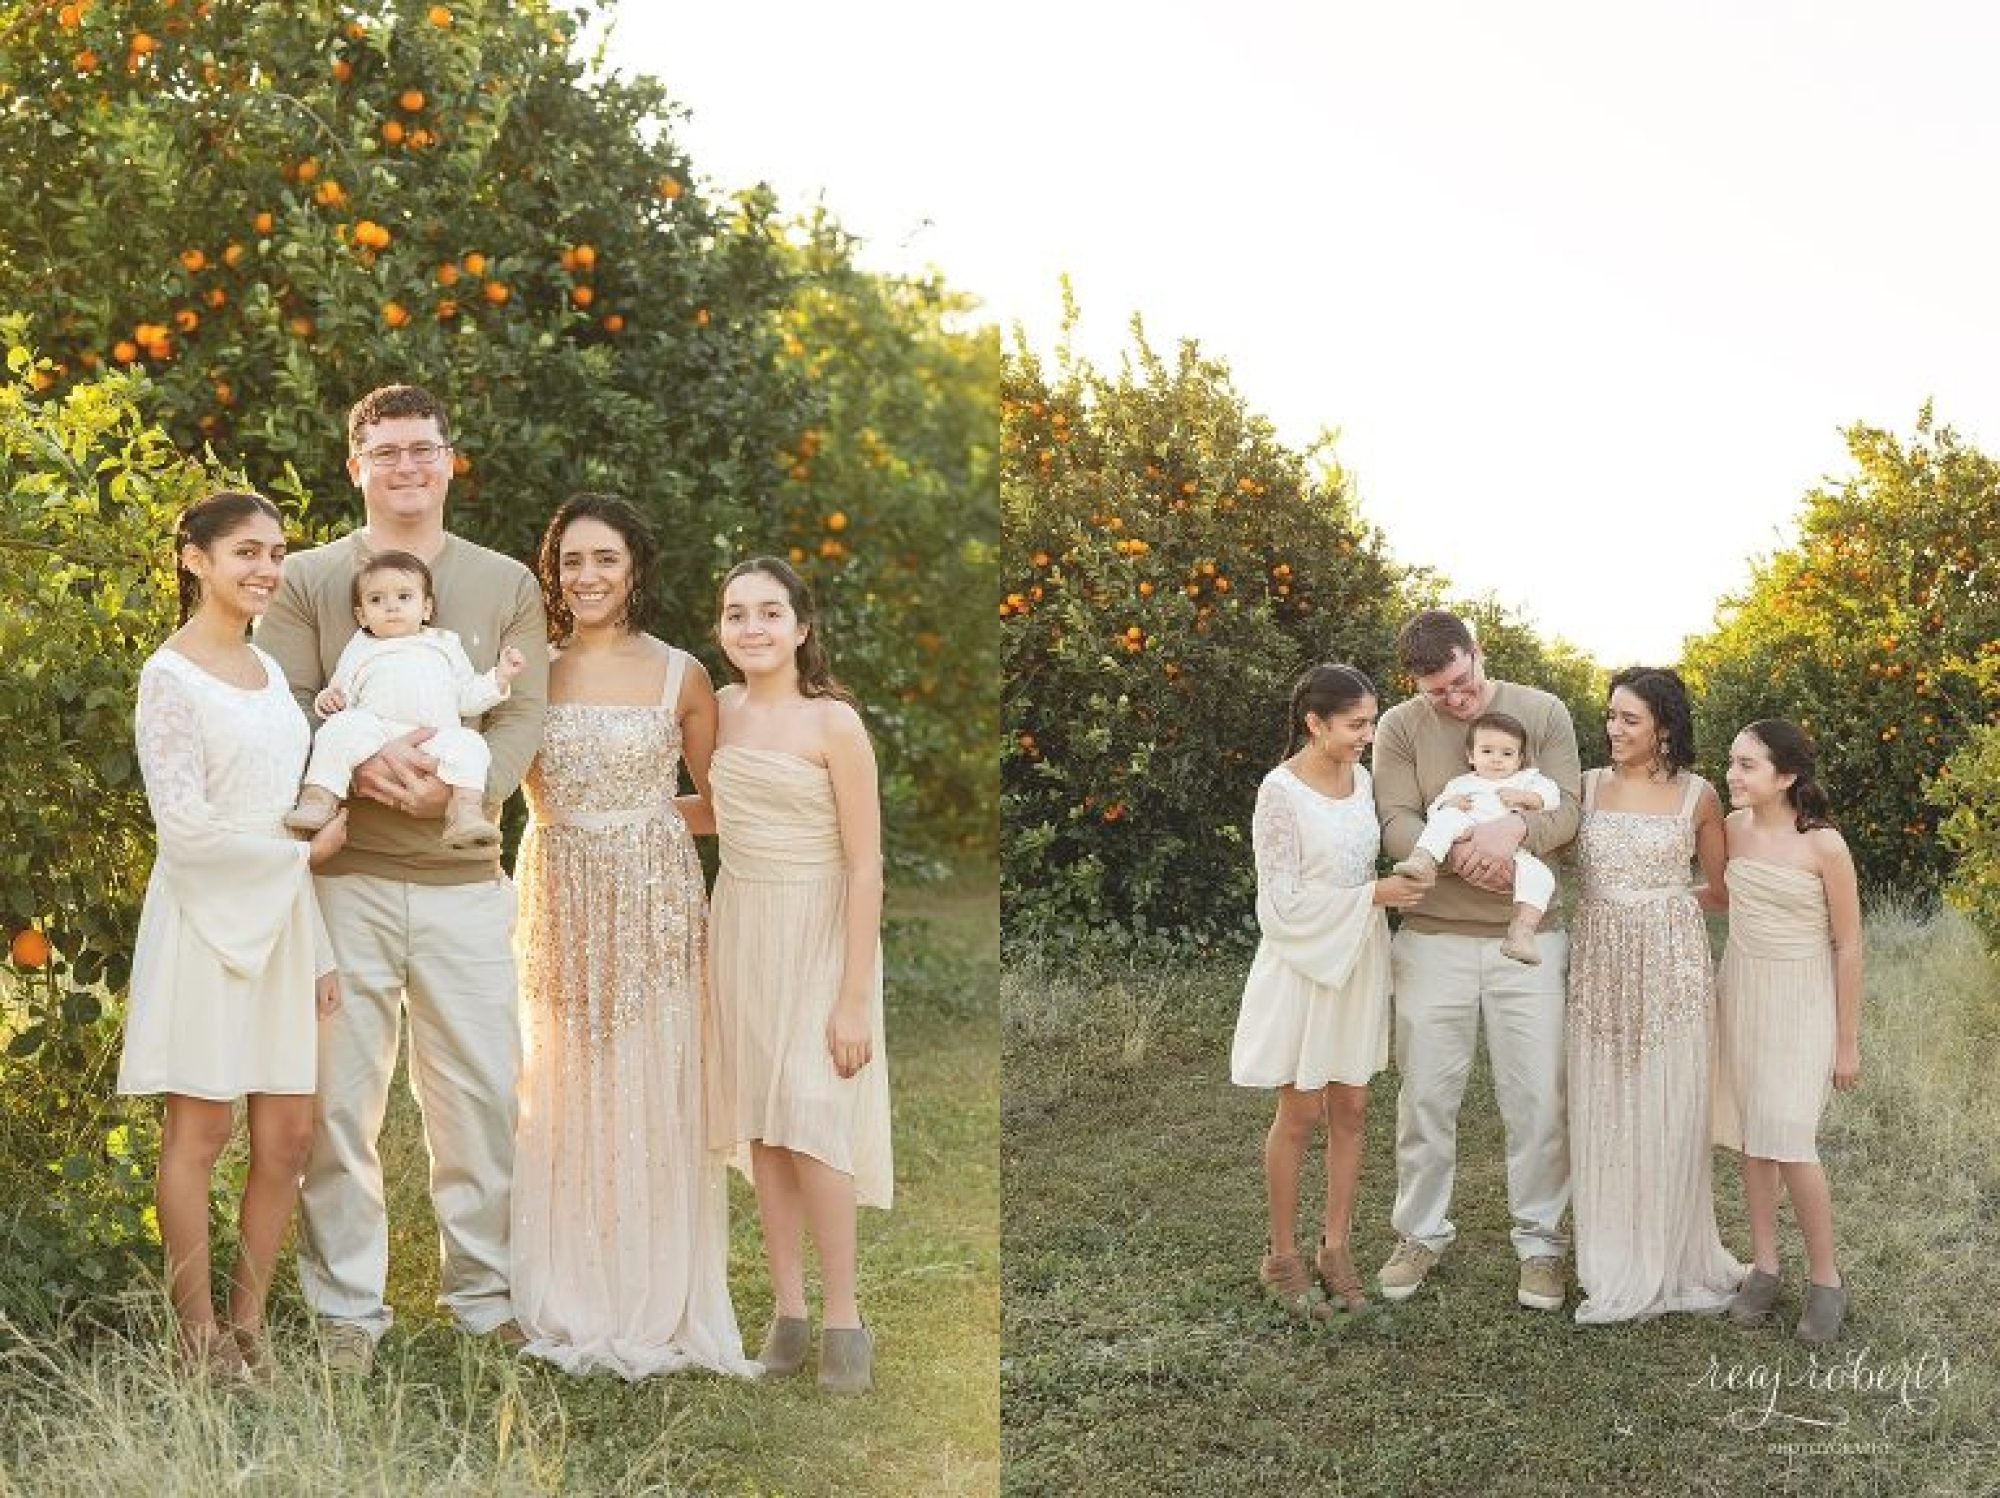 What to wear for your family photo session, neutrals, creams, tan, brown | Phoenix Family Photographer | Reaj Roberts Photography